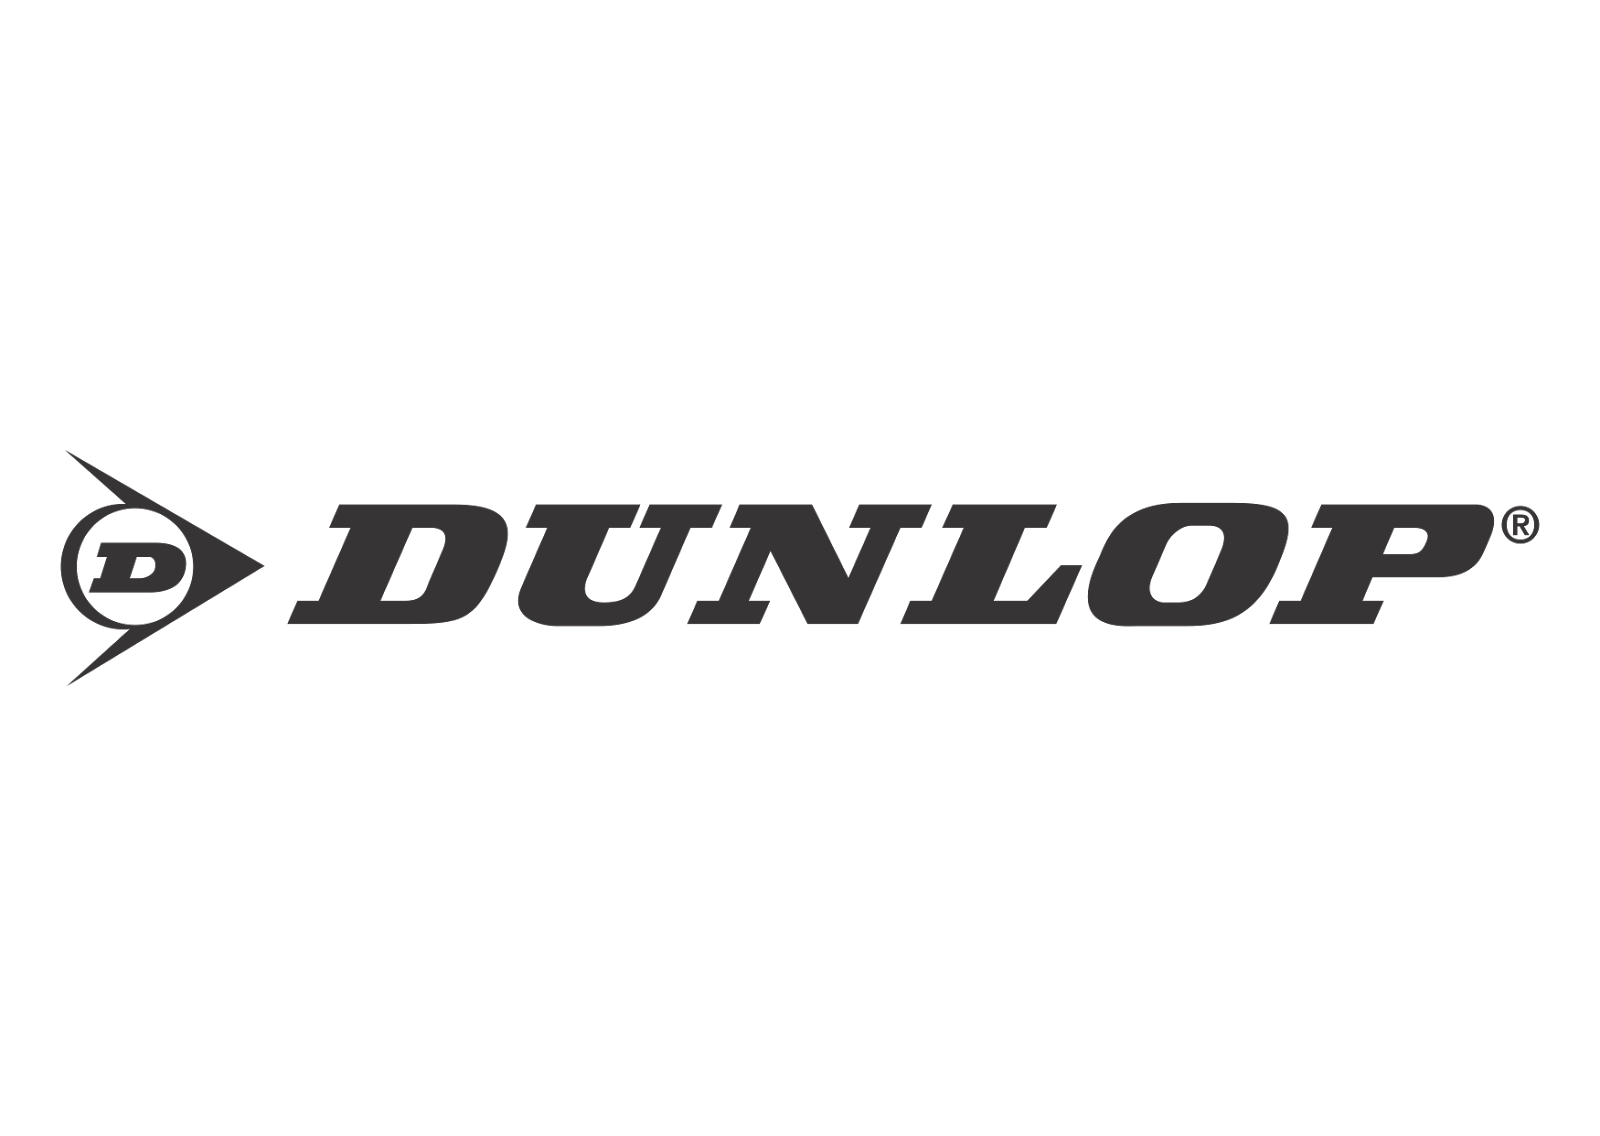 Dunlop Black White Logo Vector Format Cdr Ai Eps Svg